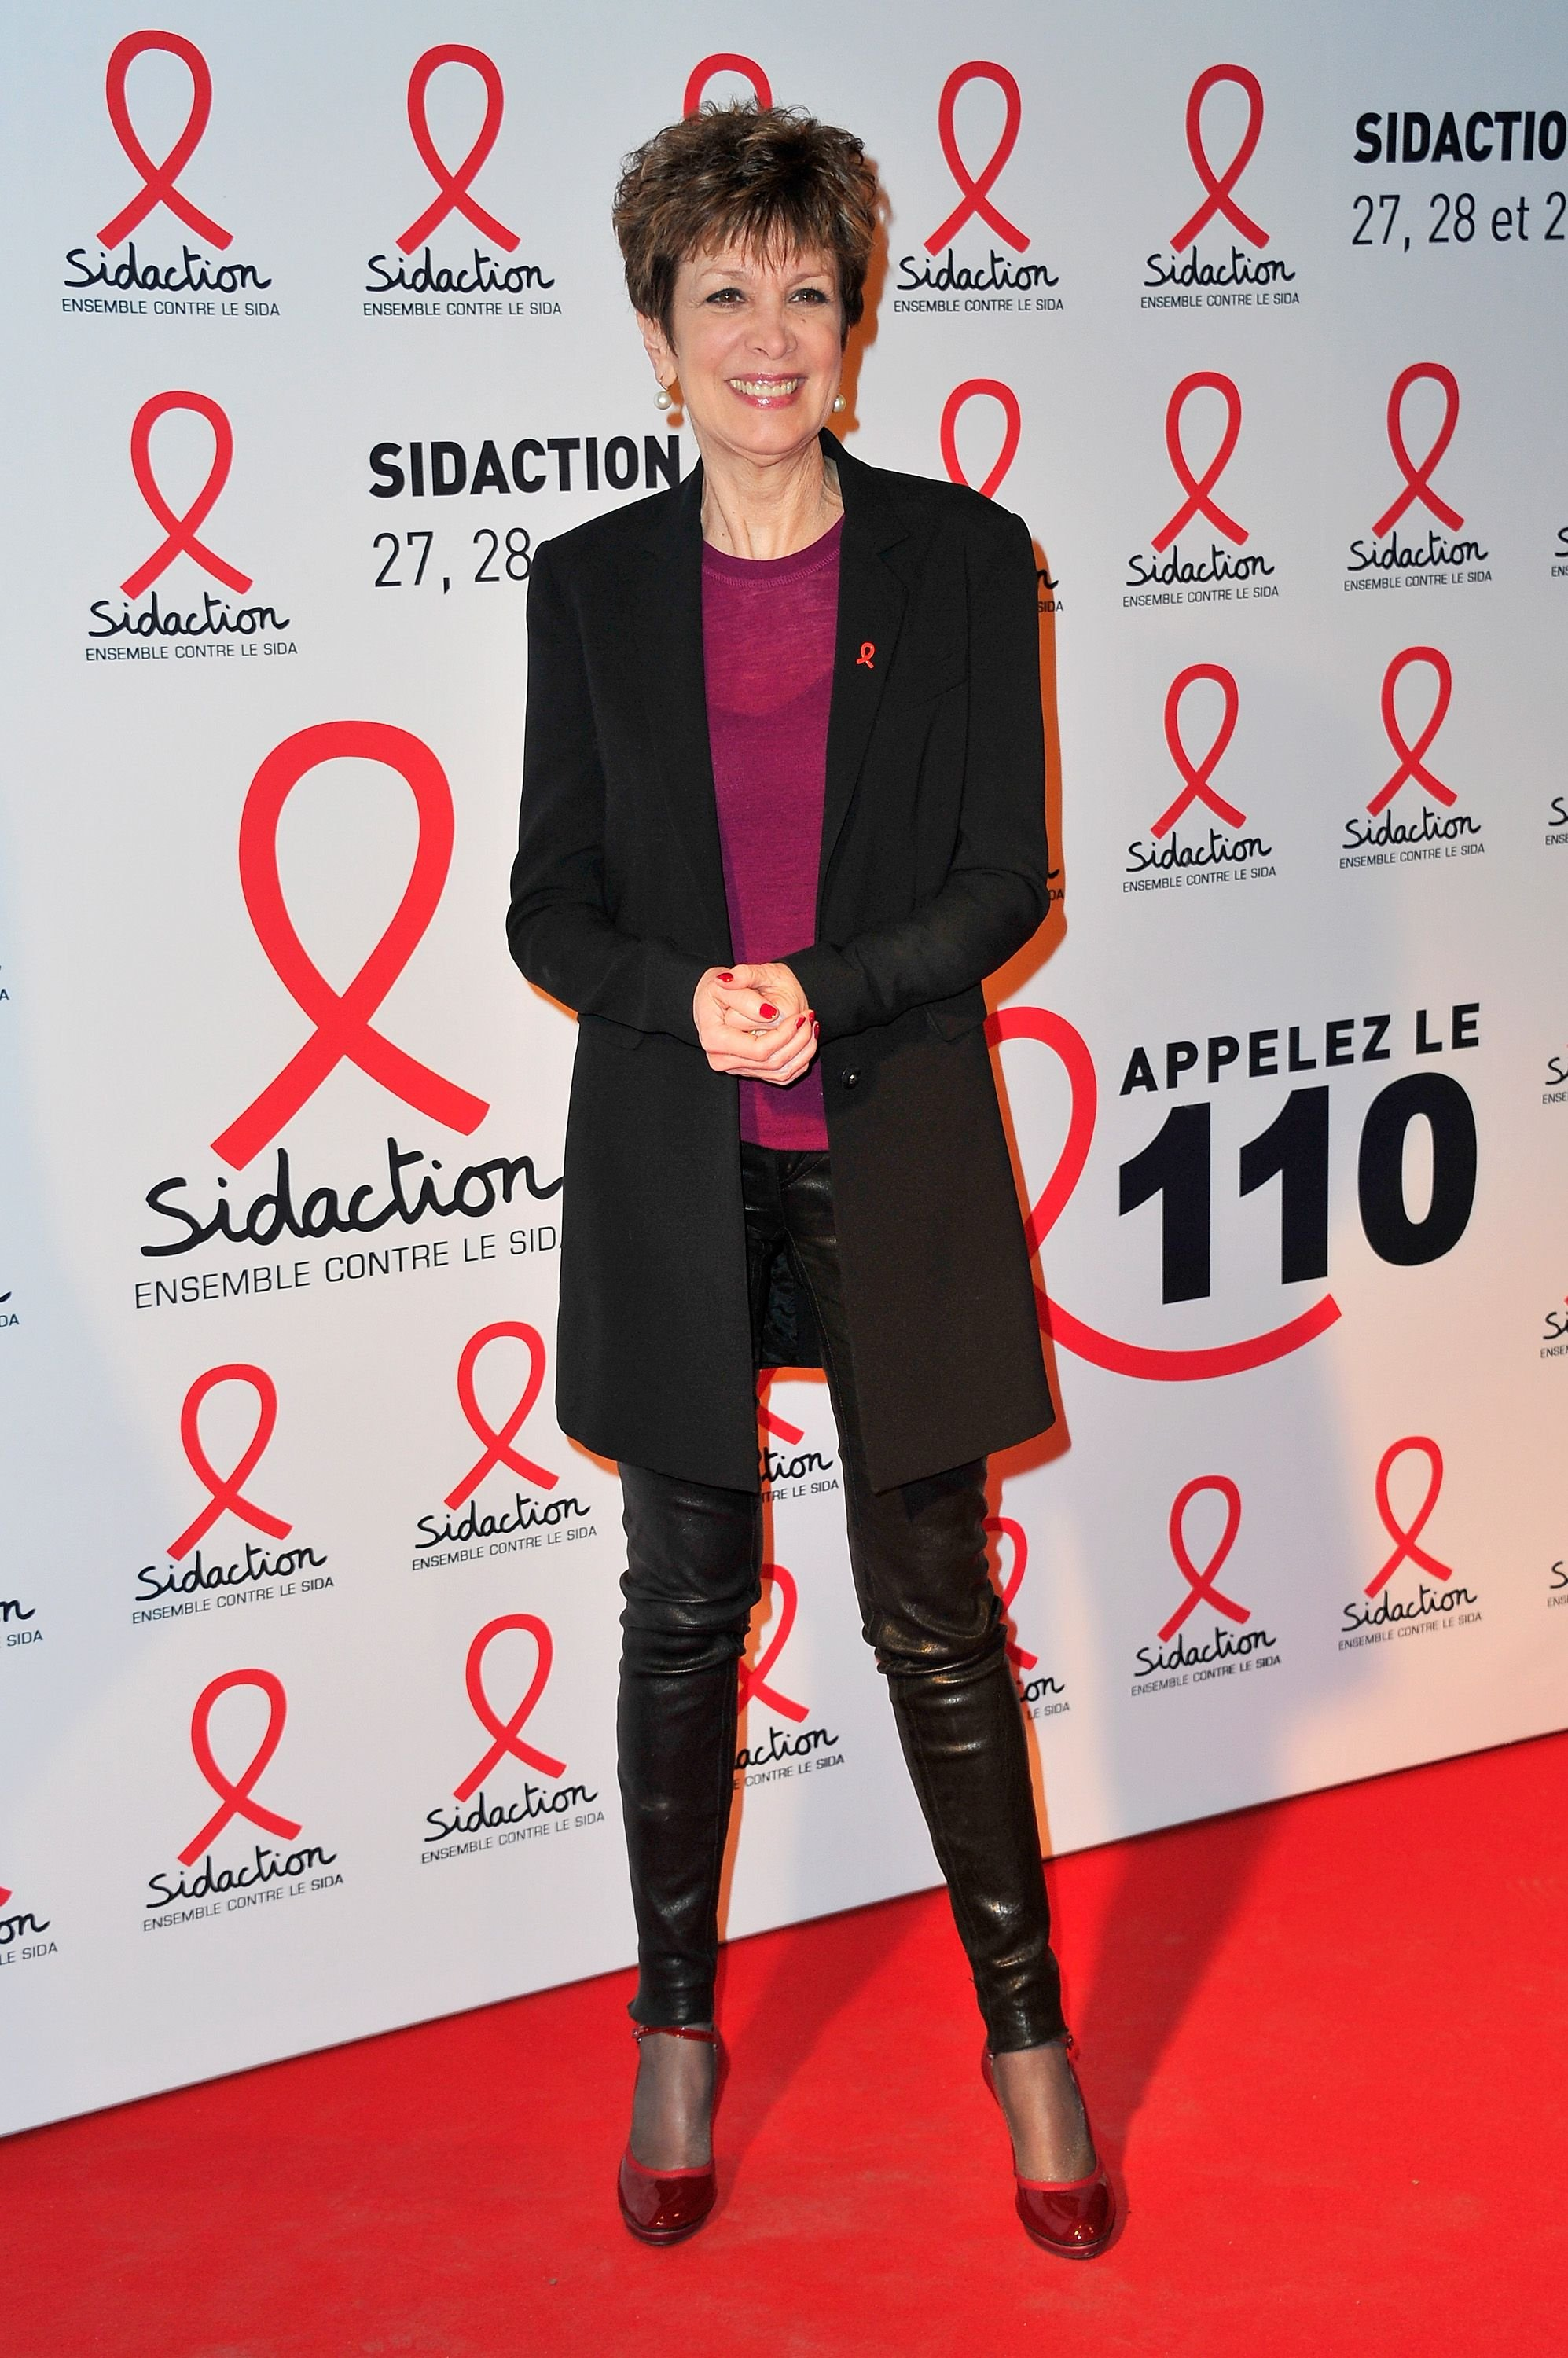 Catherine Laborde assiste à la Sidaction 2015 au Musée du Quai Branly le 2 mars 2015 à Paris, France. | Photo : Getty Images